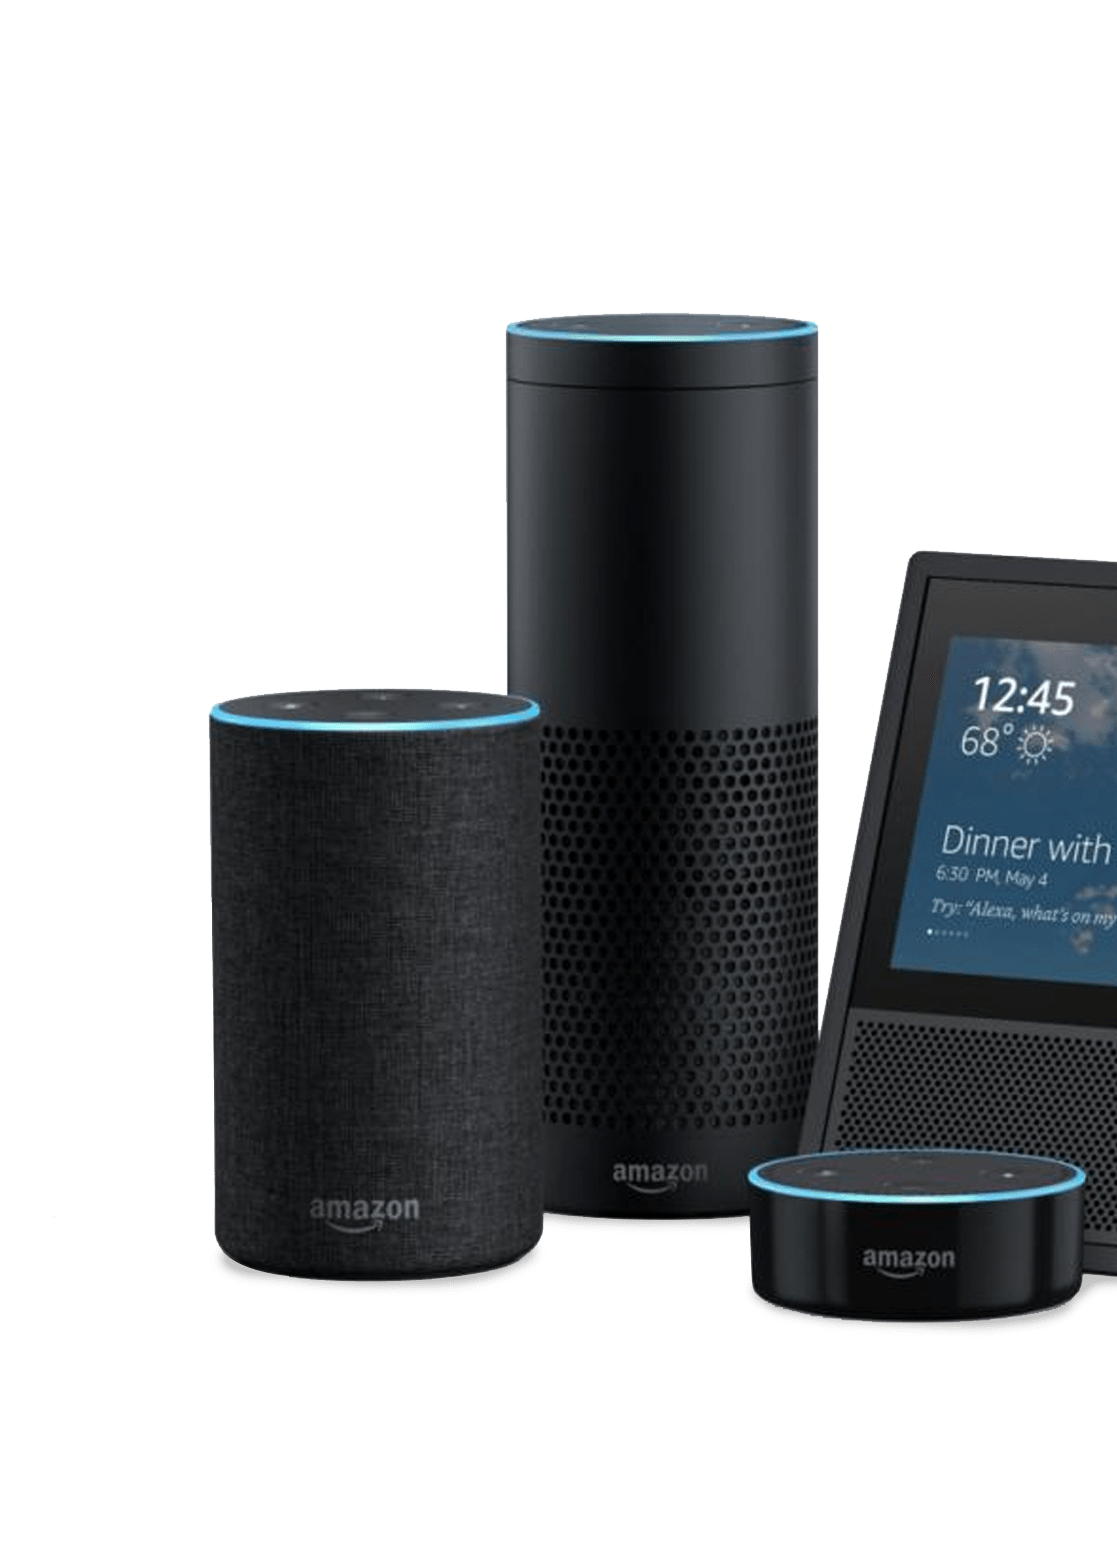 Various voice-enabled devices